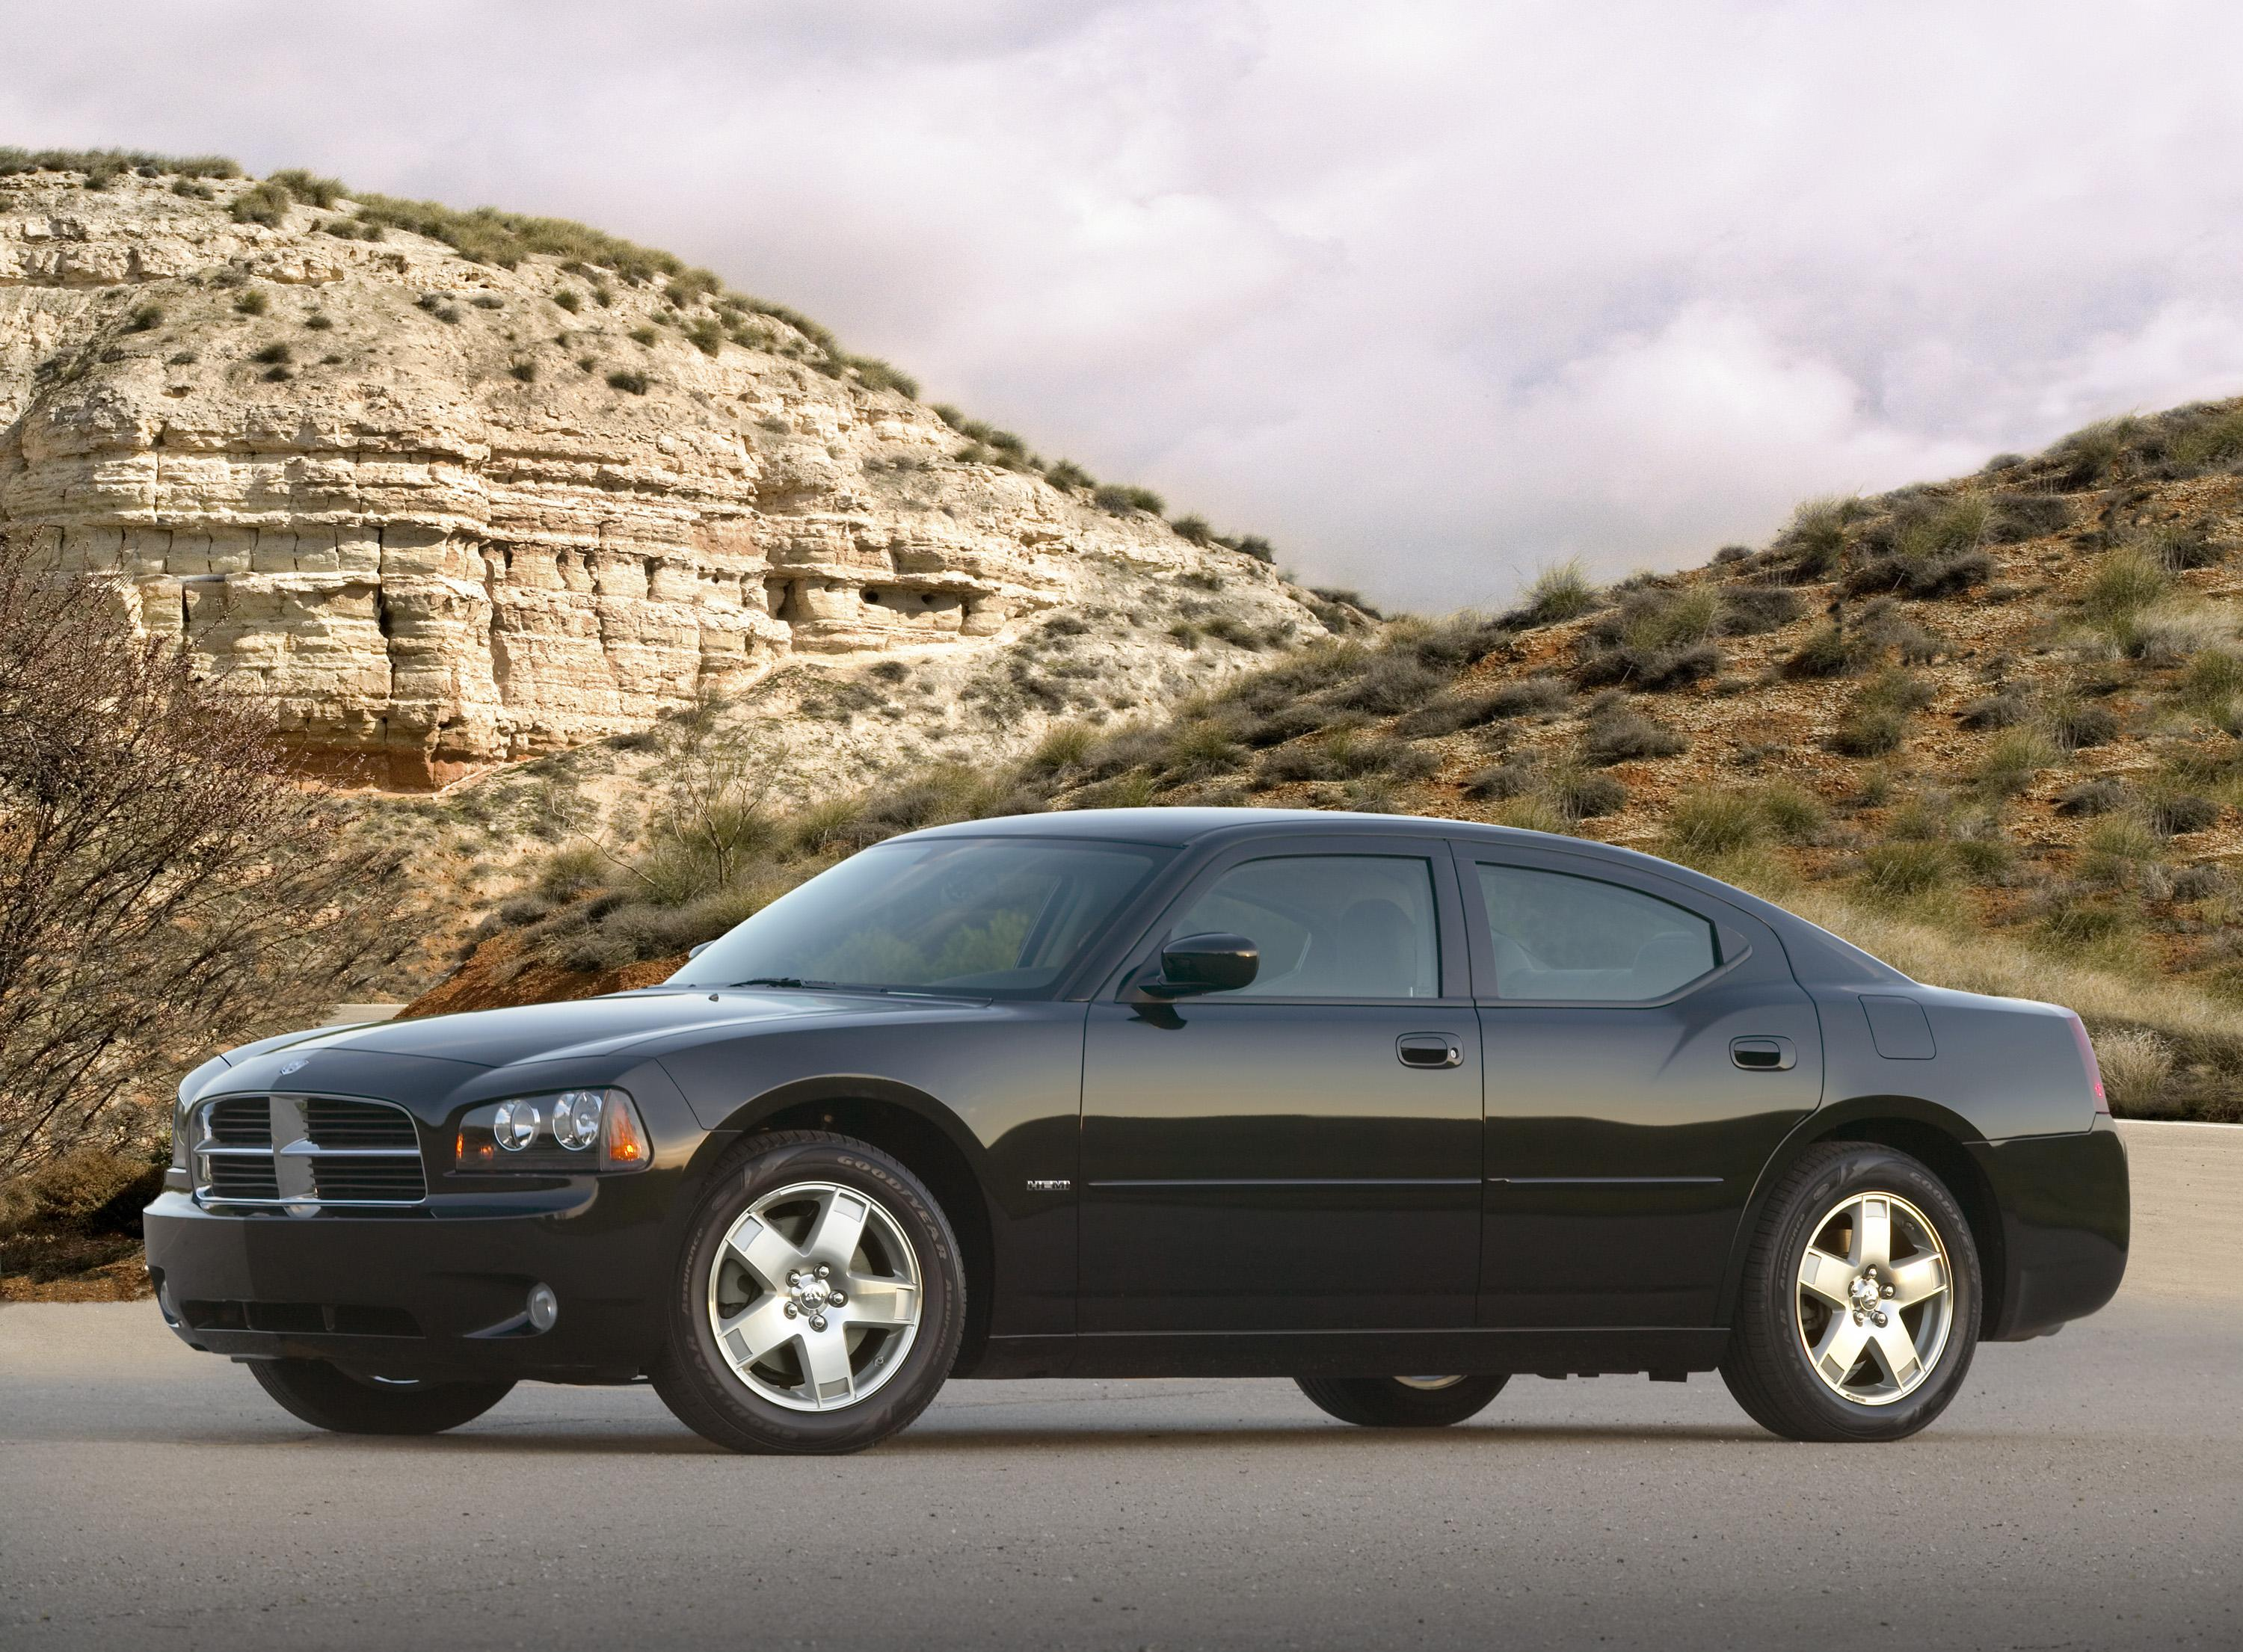 2007 Dodge Charger R/T AWD (select to view enlarged photo)